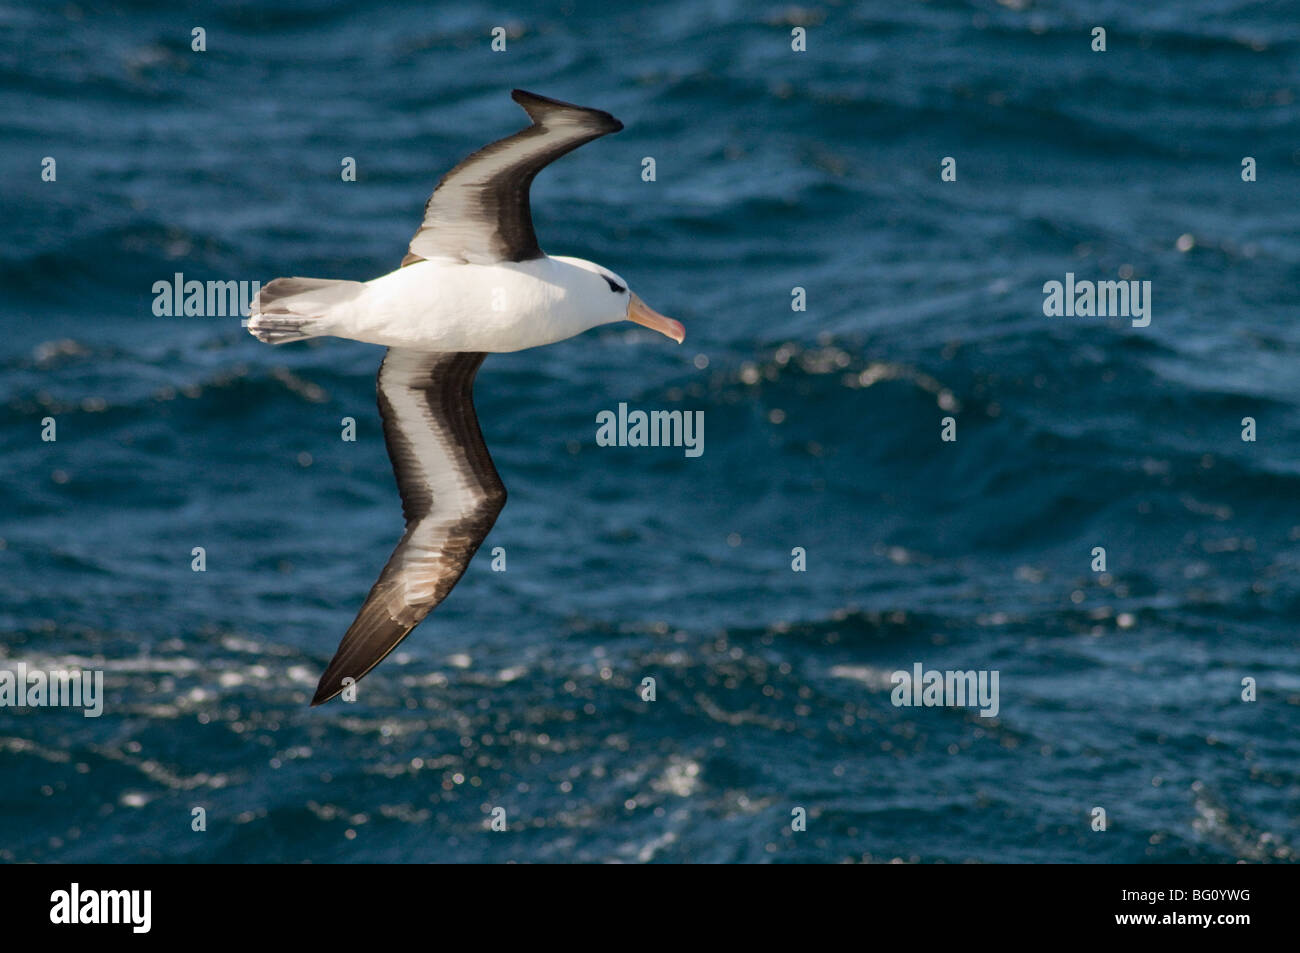 Albatross near Falkland Islands, South Atlantic, South America - Stock Image